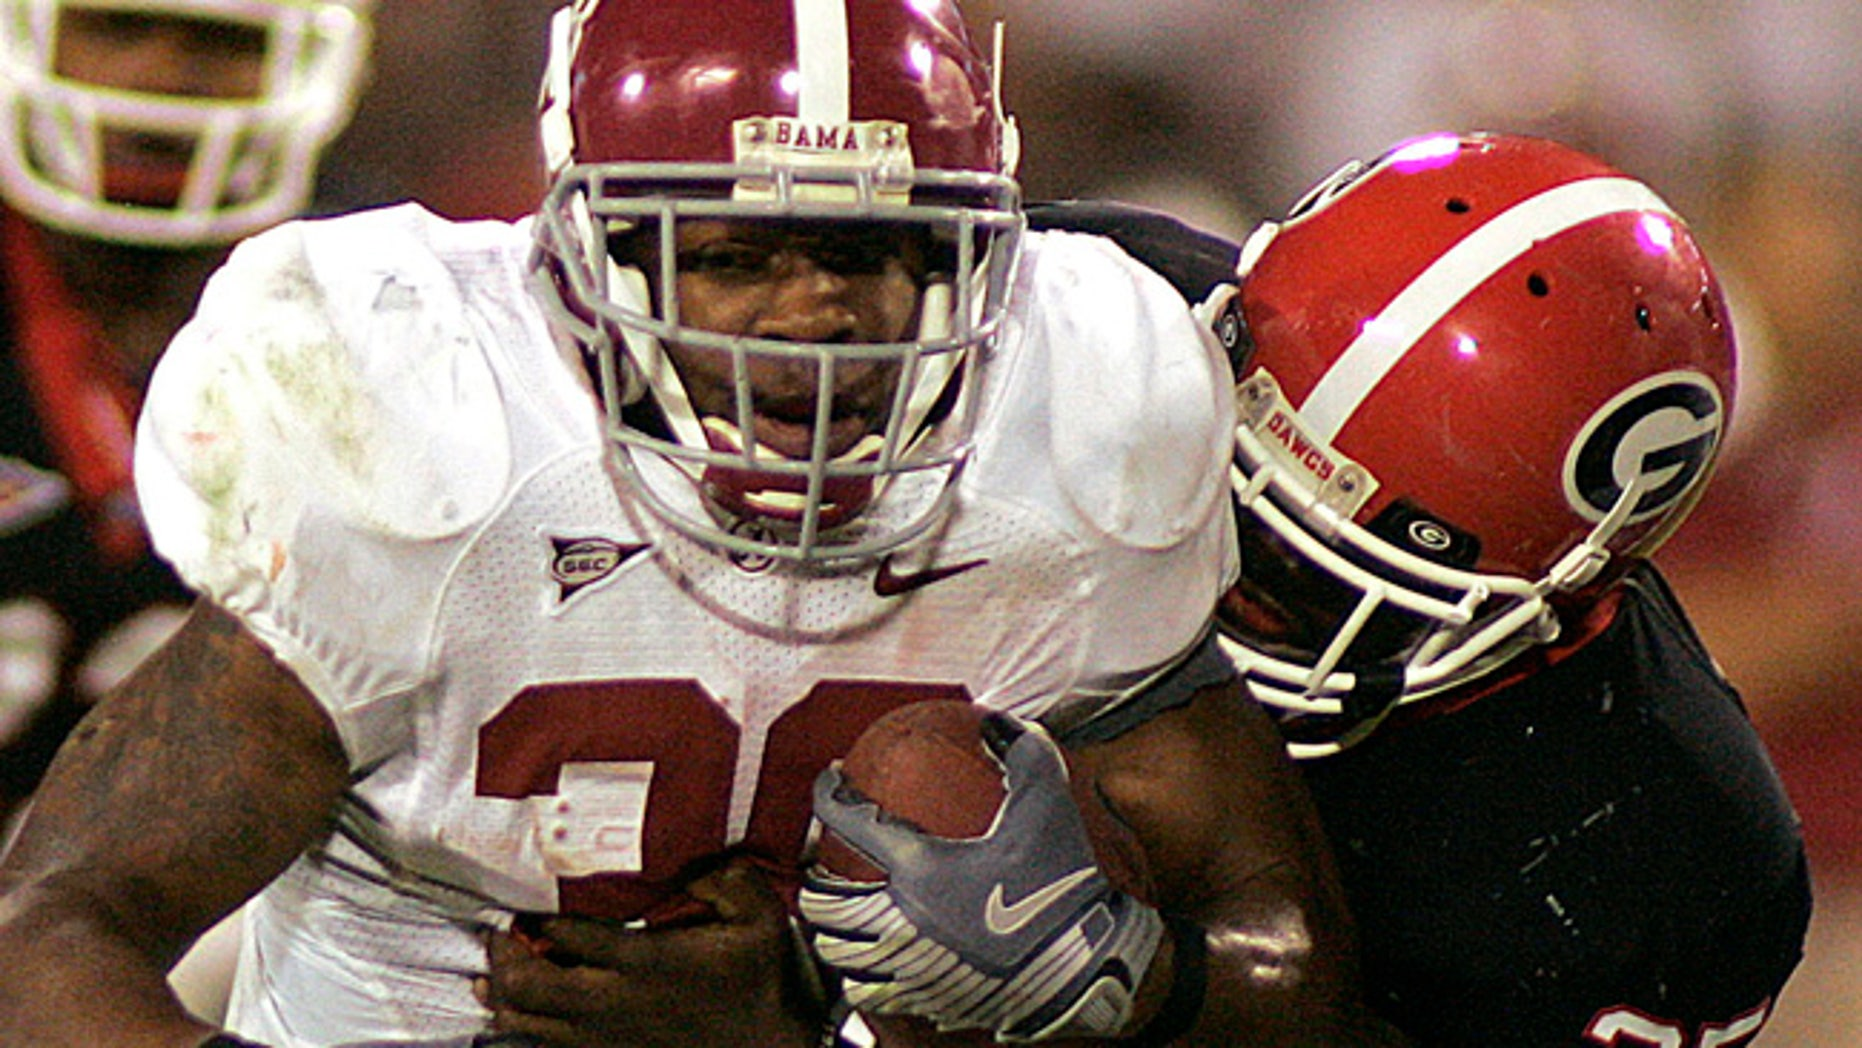 Running back Glen Coffee played for Alabama before his season in the NFL.